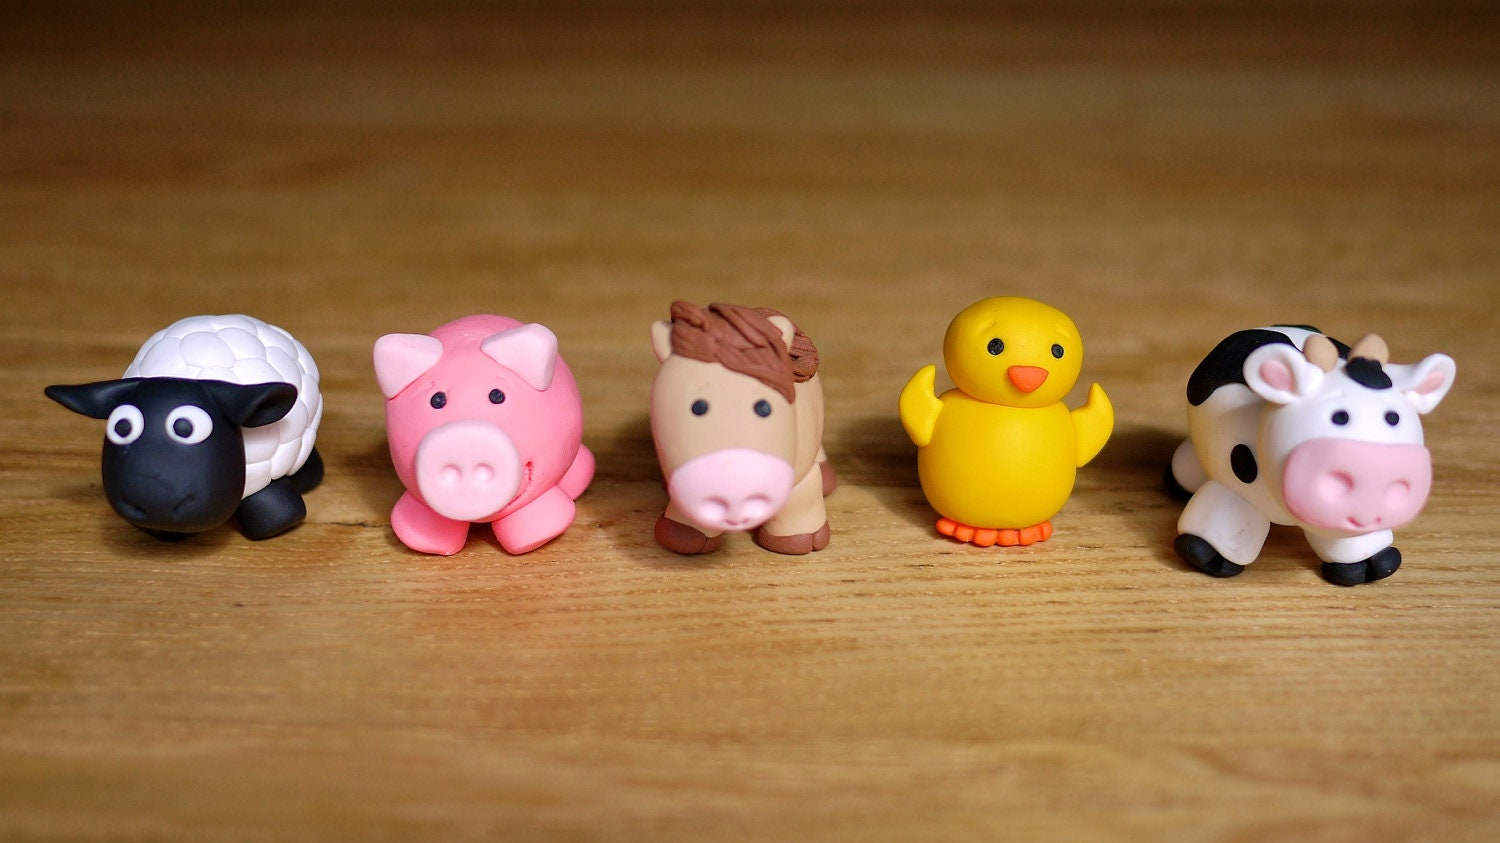 Cake Decorations Farm Animals : Handmade Farm Animal Cake Toppers